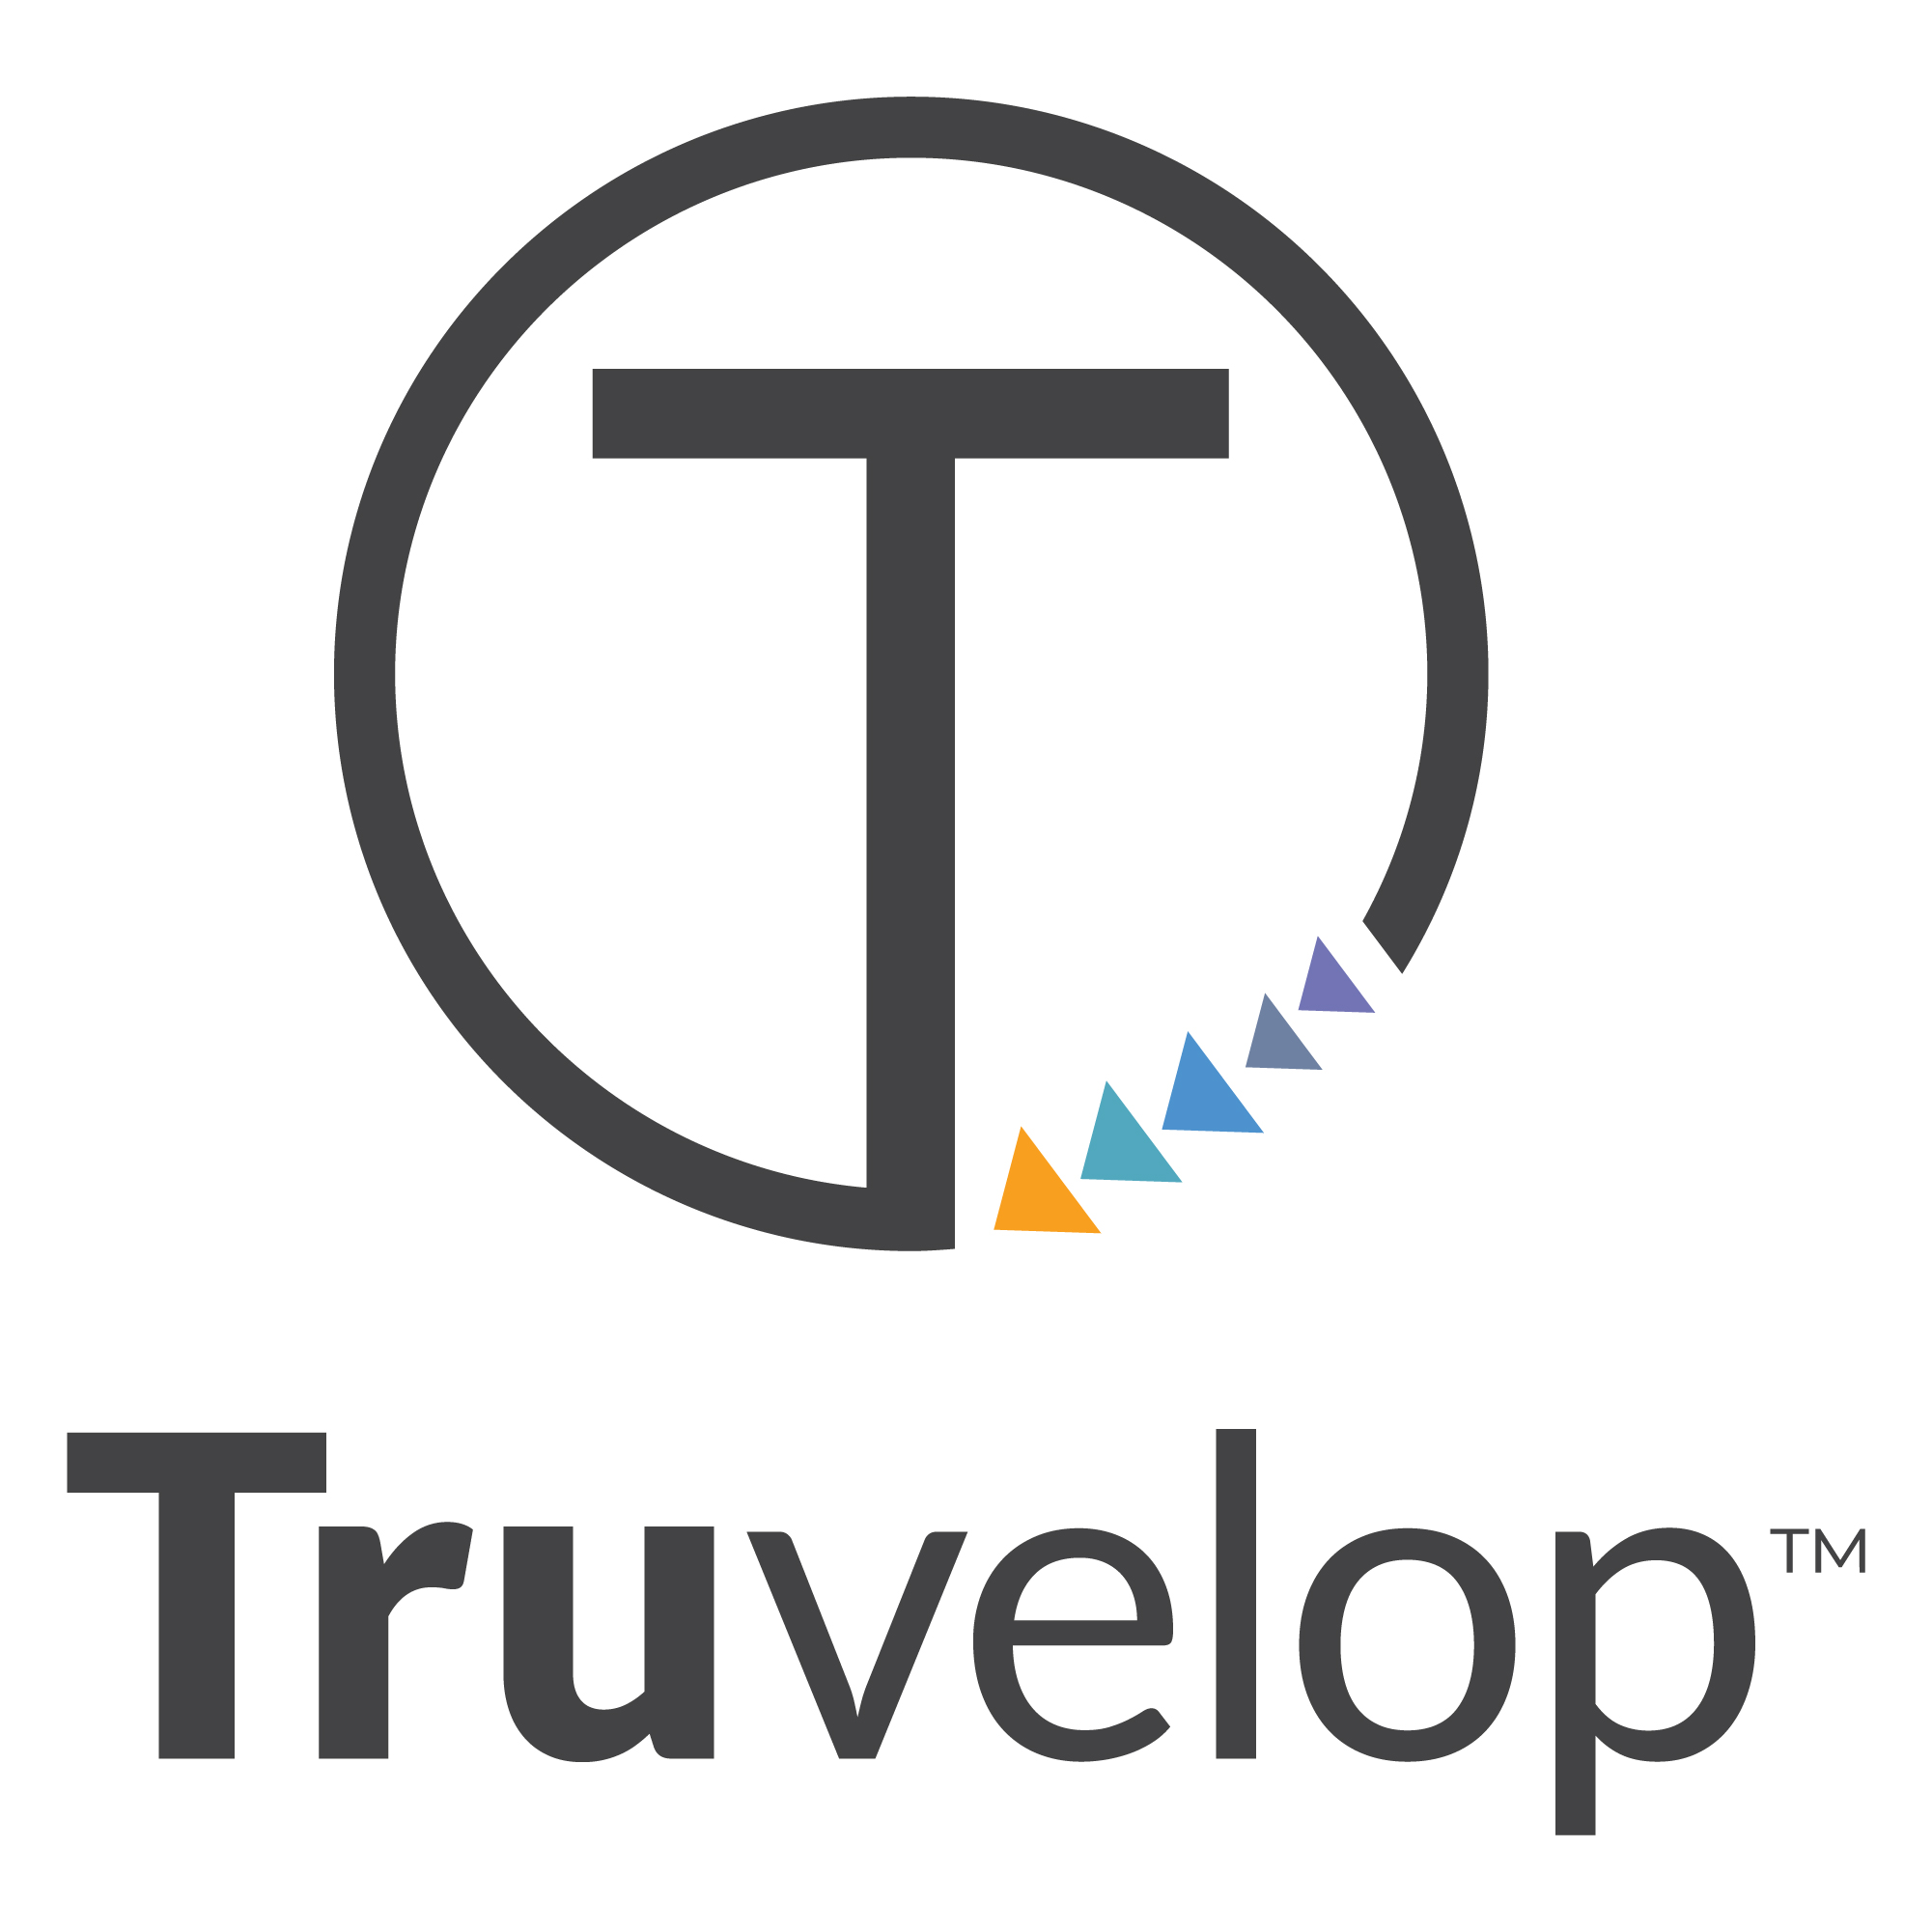 LOGO-truvelop-large-web-only